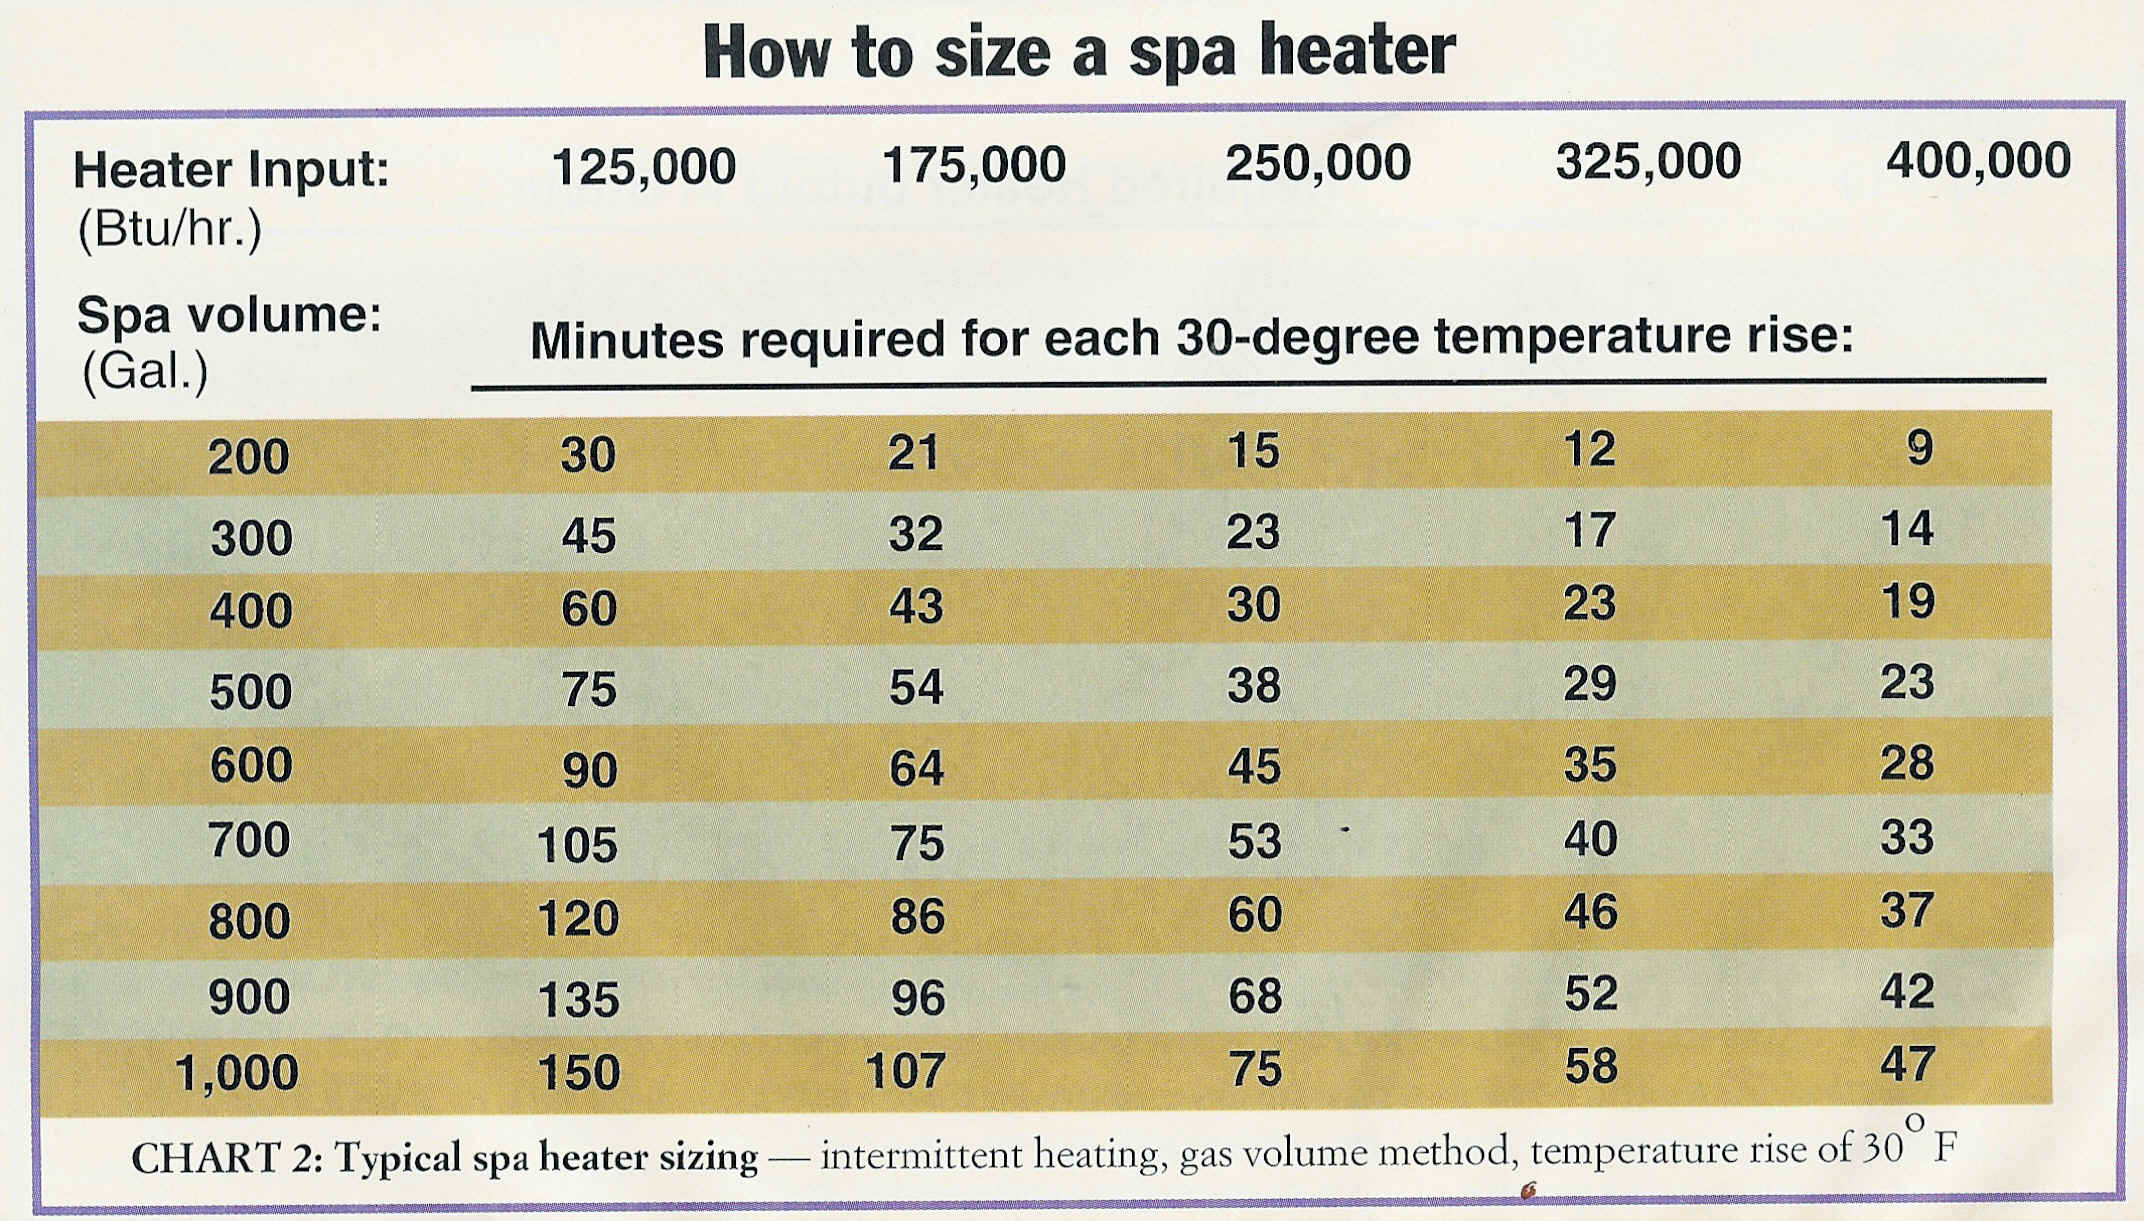 Spa Heater: Electric Spa Heater Sizing